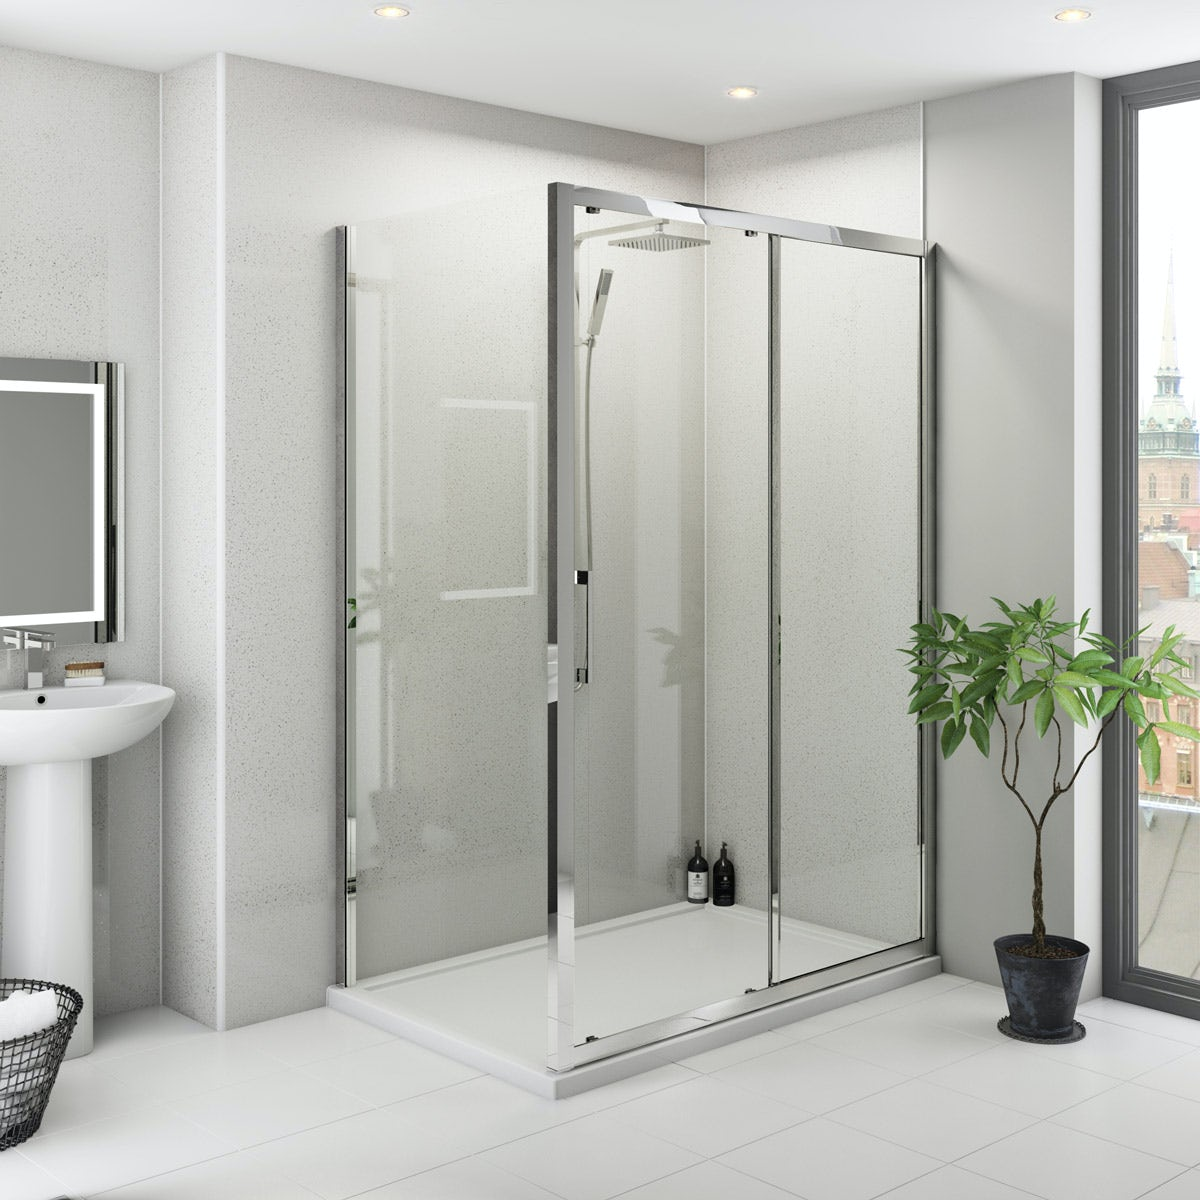 Multipanel Classic Blizzard Hydrolock shower wall panel